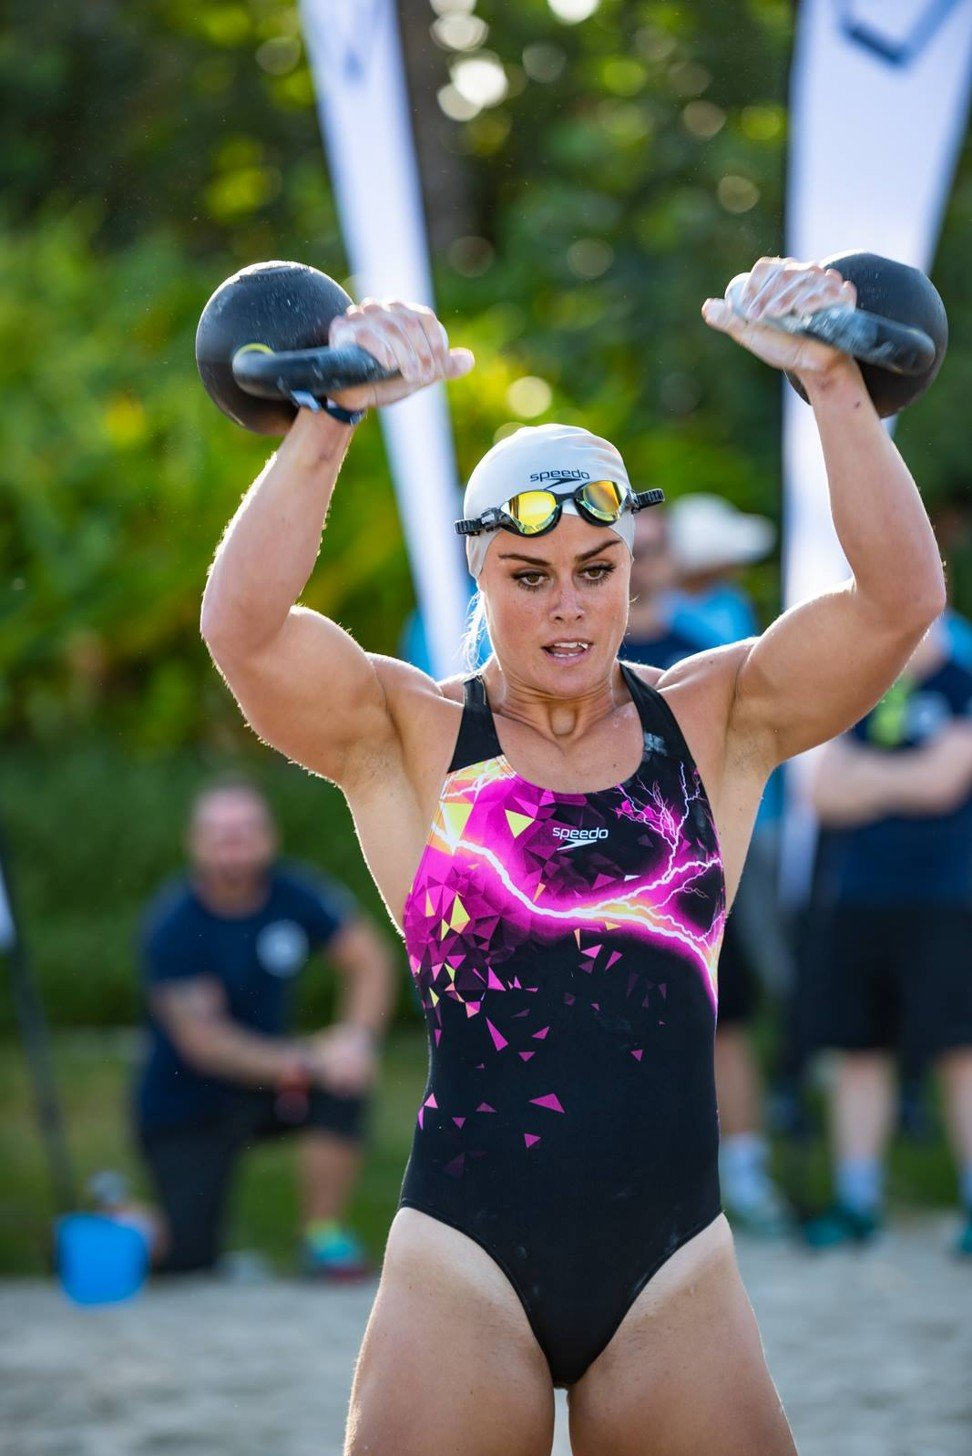 Sara Sigmundsdottir competes during the 'Baywatch' event at the Dubai CrossFit Sanctionals. Photo: CrossFit